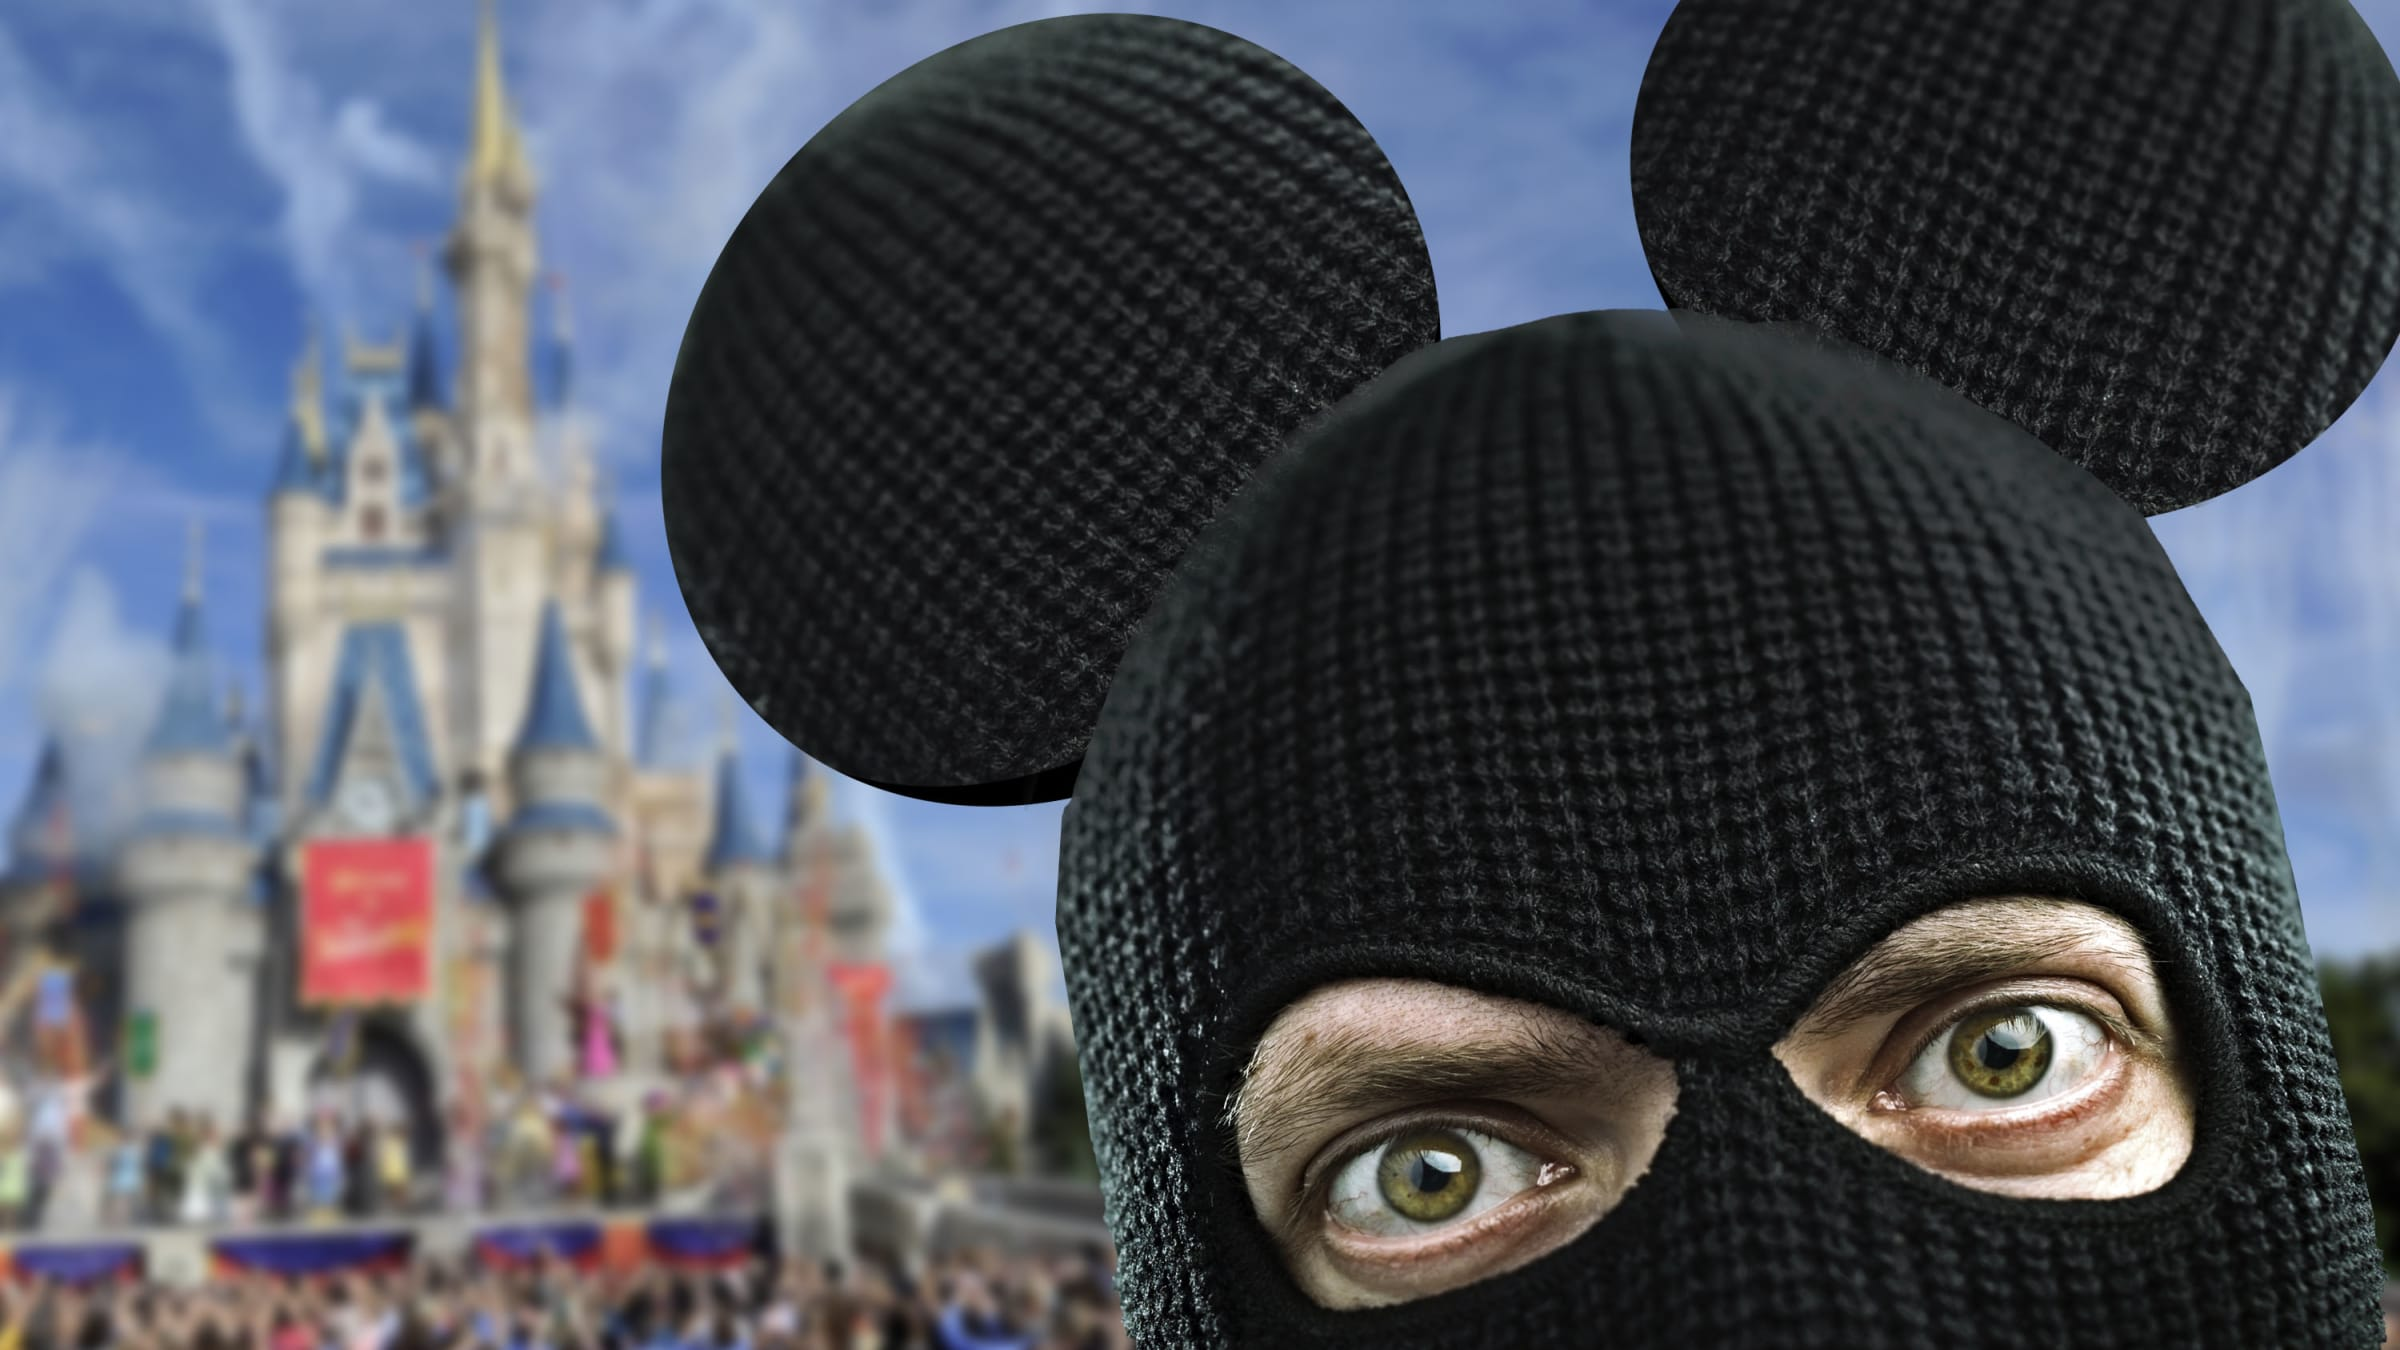 Accused Thief Patrick Spikes Taunted Disney World With Photo